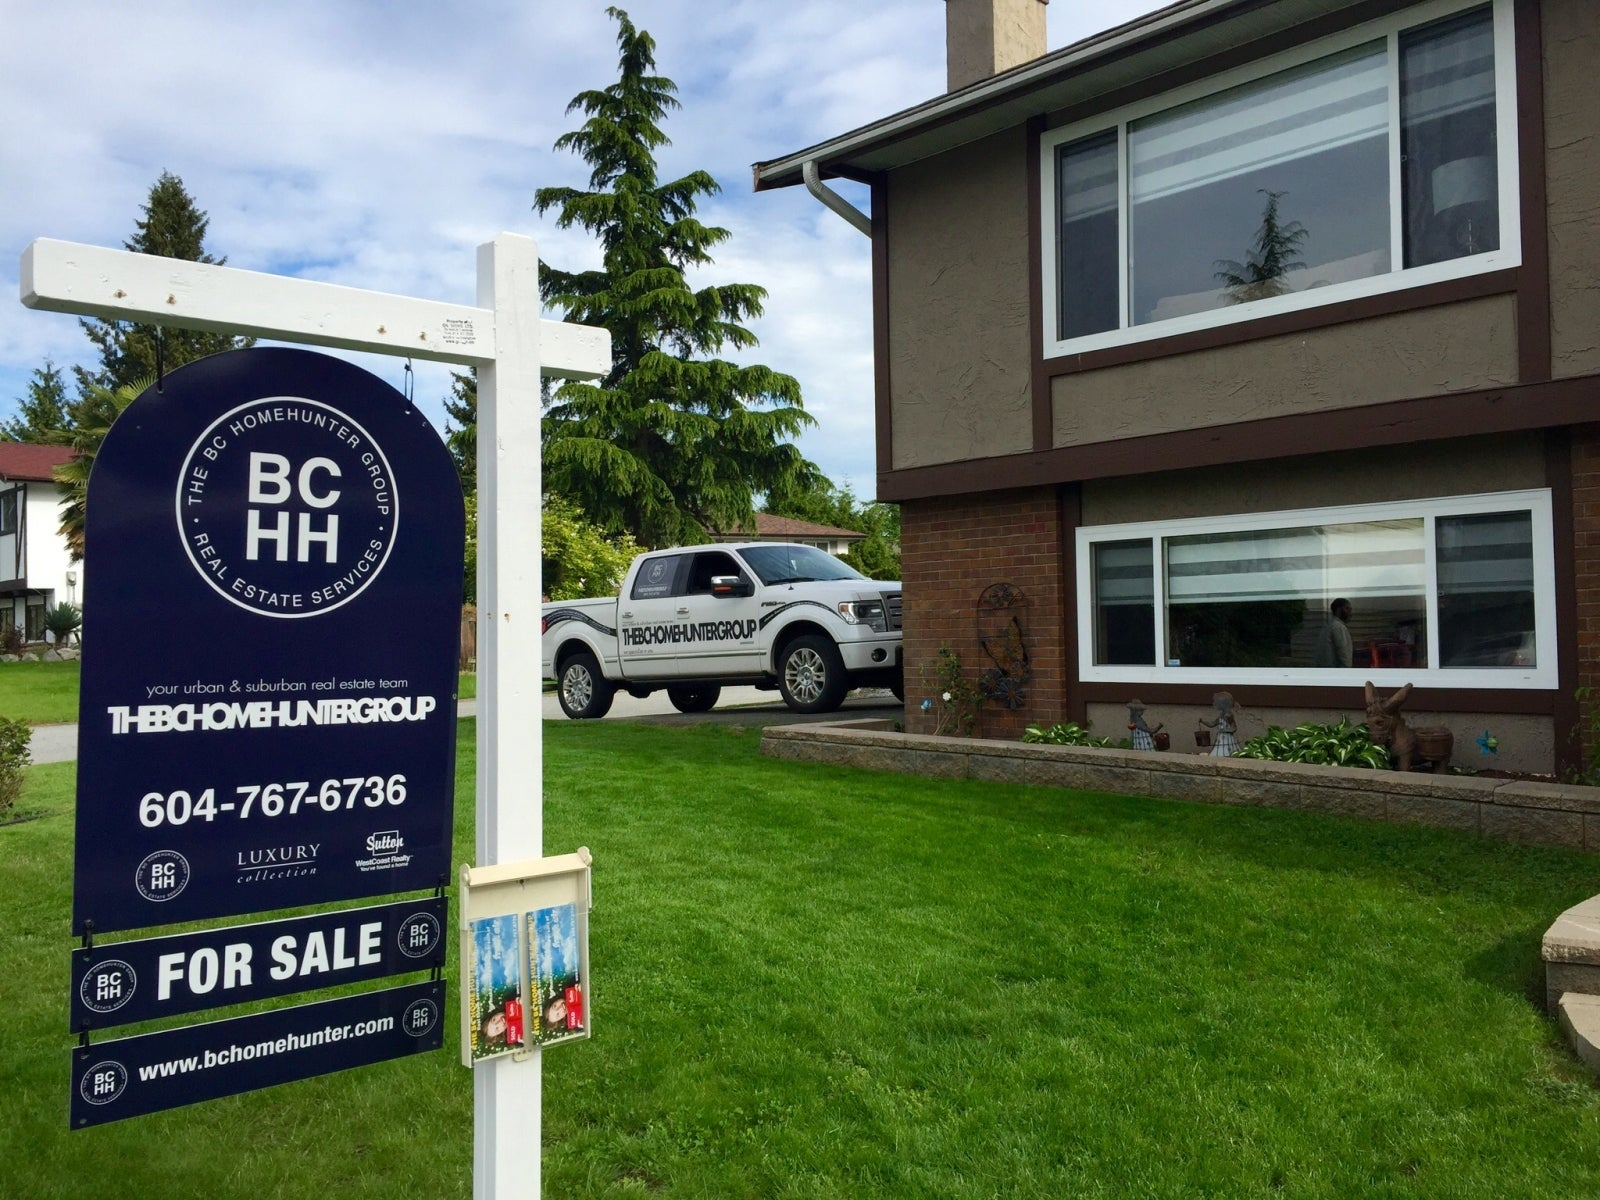 THE BC HOME HUNTER GROUP #BCHOMEHUNTER.COM 604-767-6736